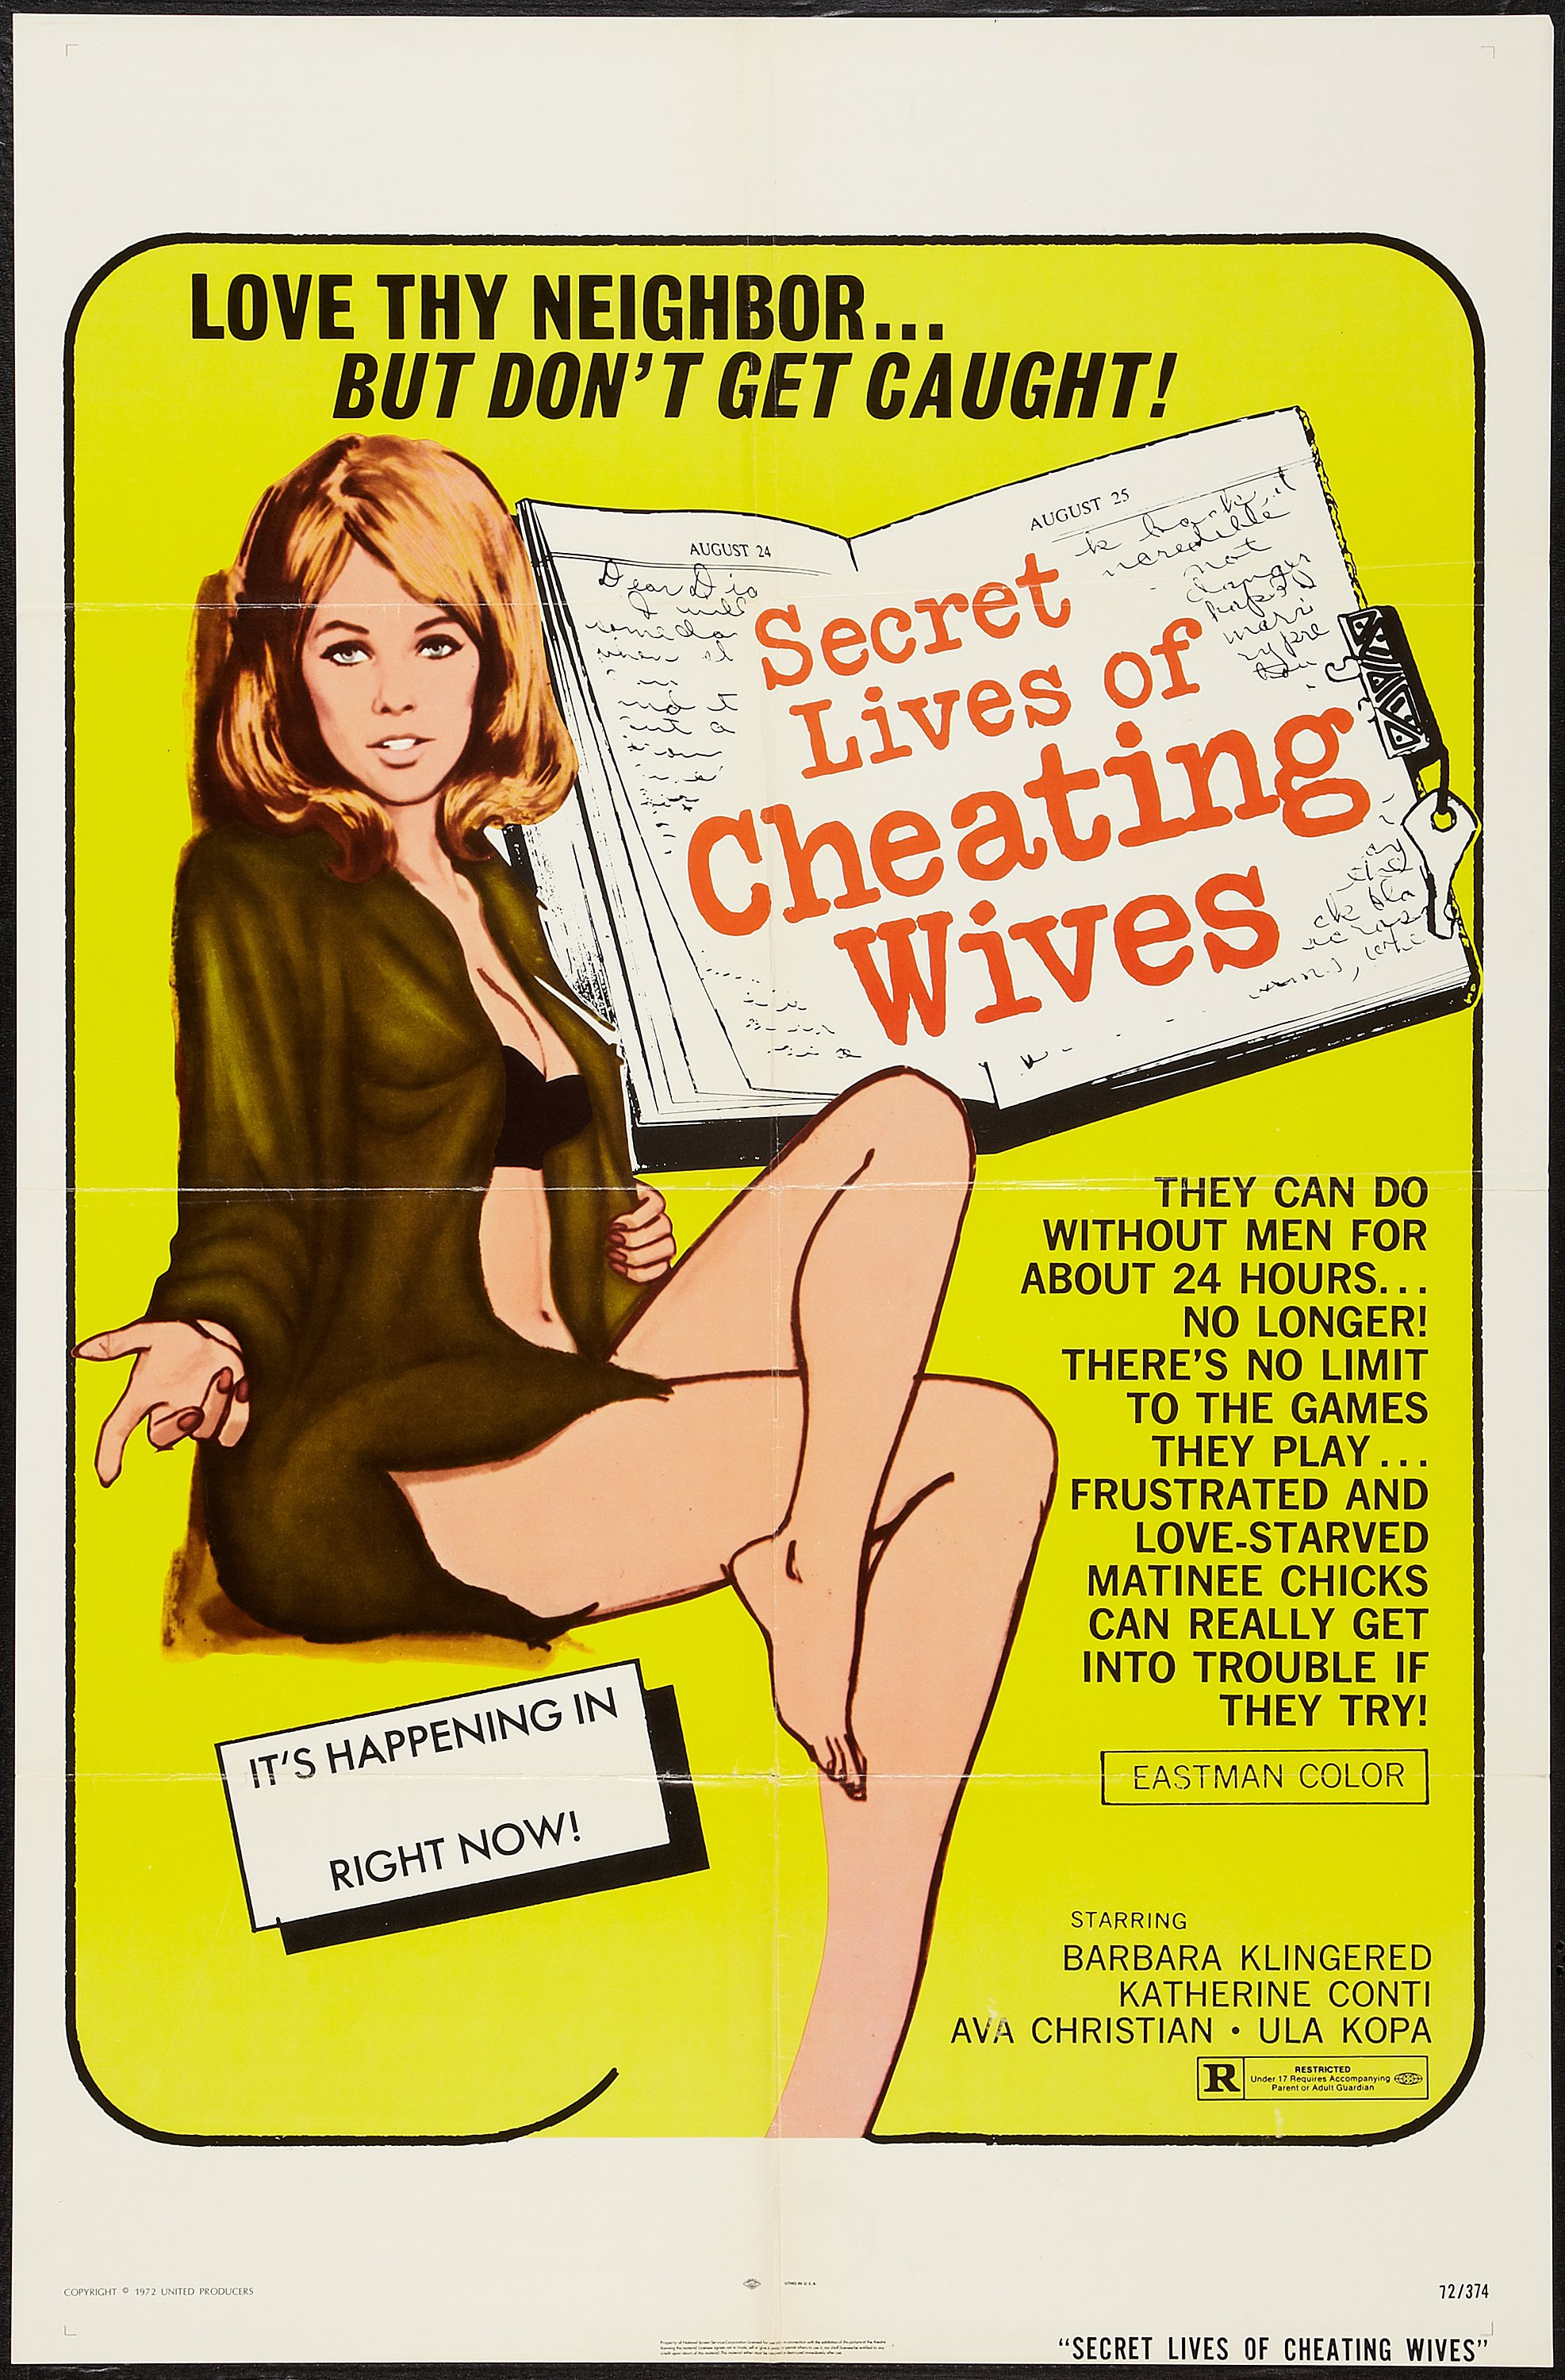 Secret Lives of Cheating Wives and Other Lot (United Producers, | Lot #51405 | Heritage Auctions